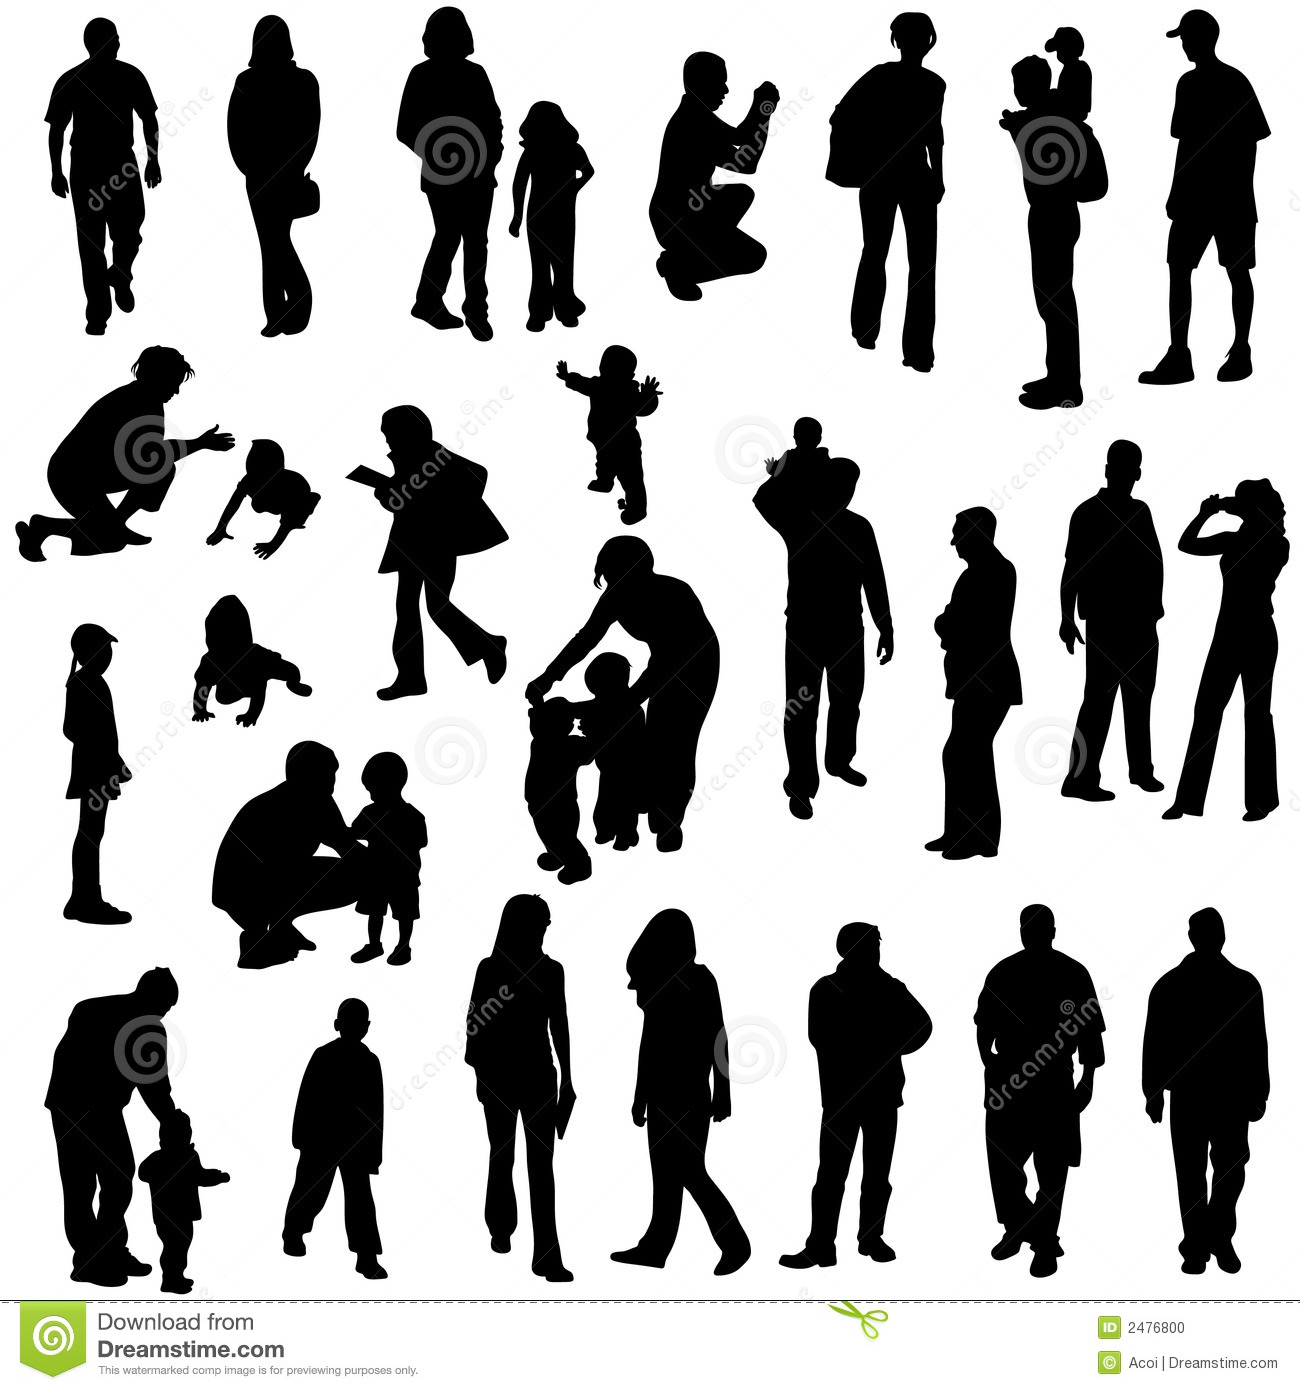 Silhouette Paintings Of People Silhouetten Van Mensen Vector Illustratie Illustratie